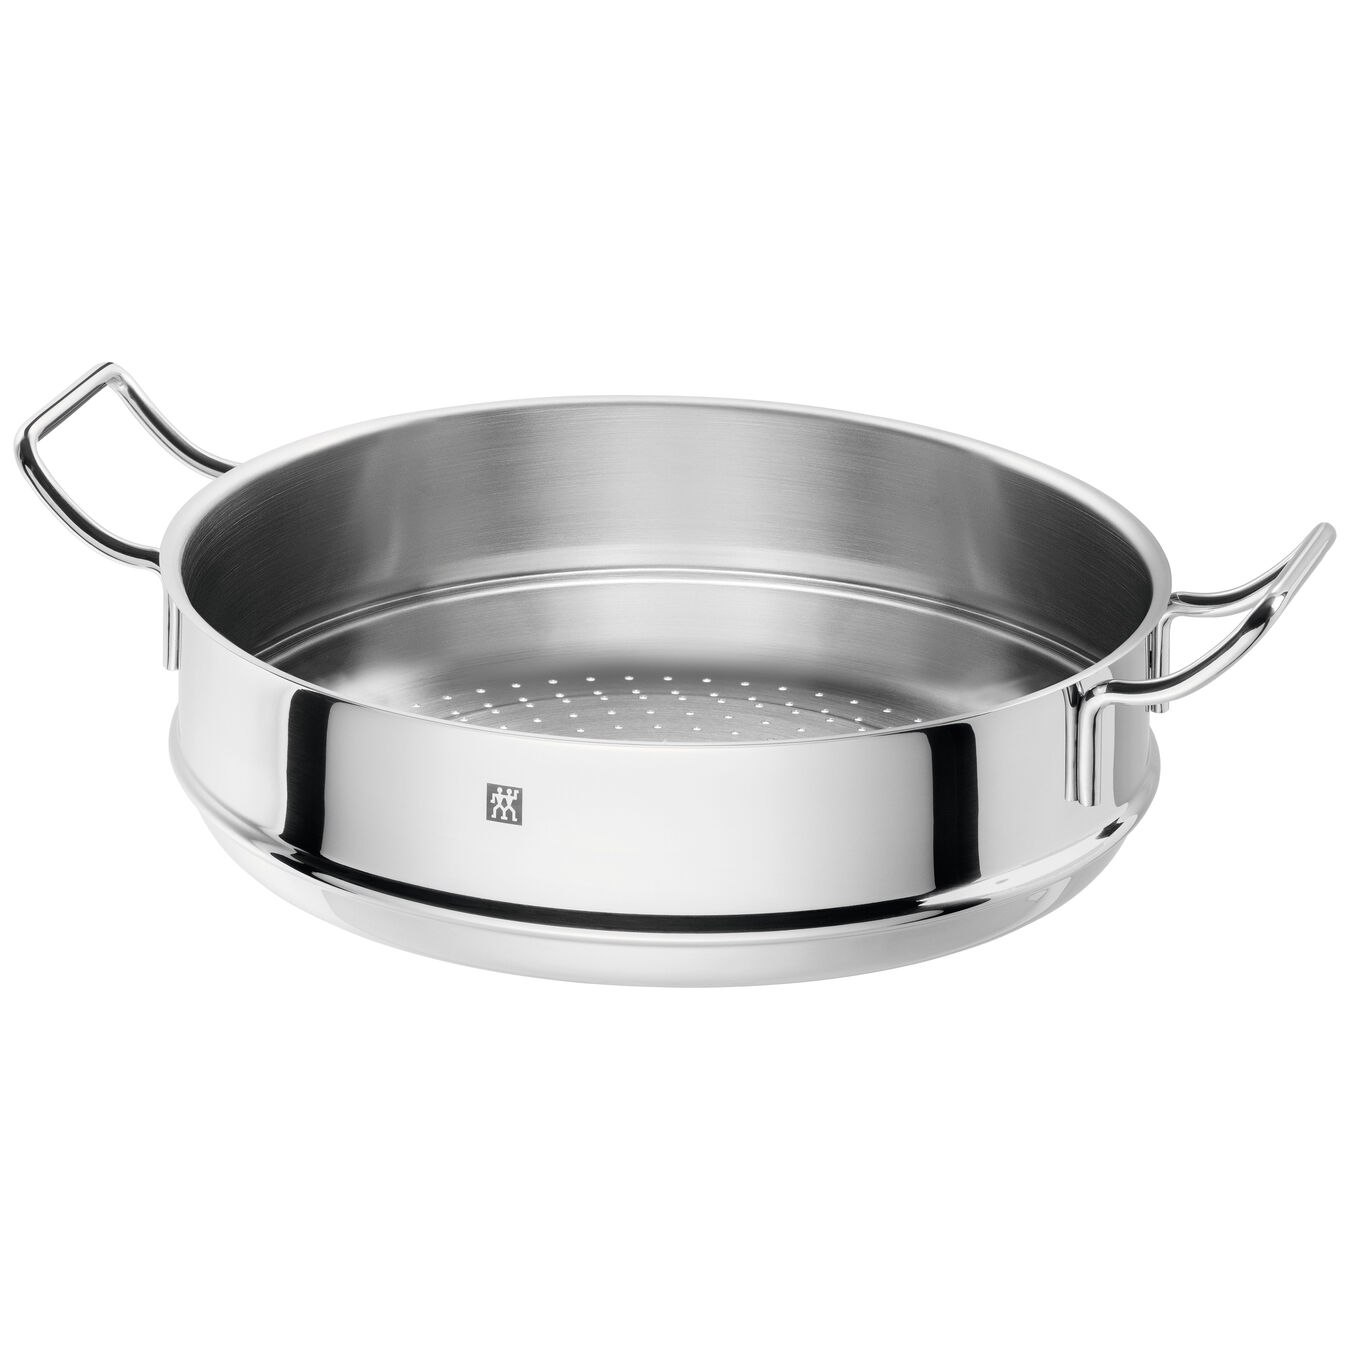 32 cm / 12.5 inch 18/10 Stainless Steel Wok,,large 3